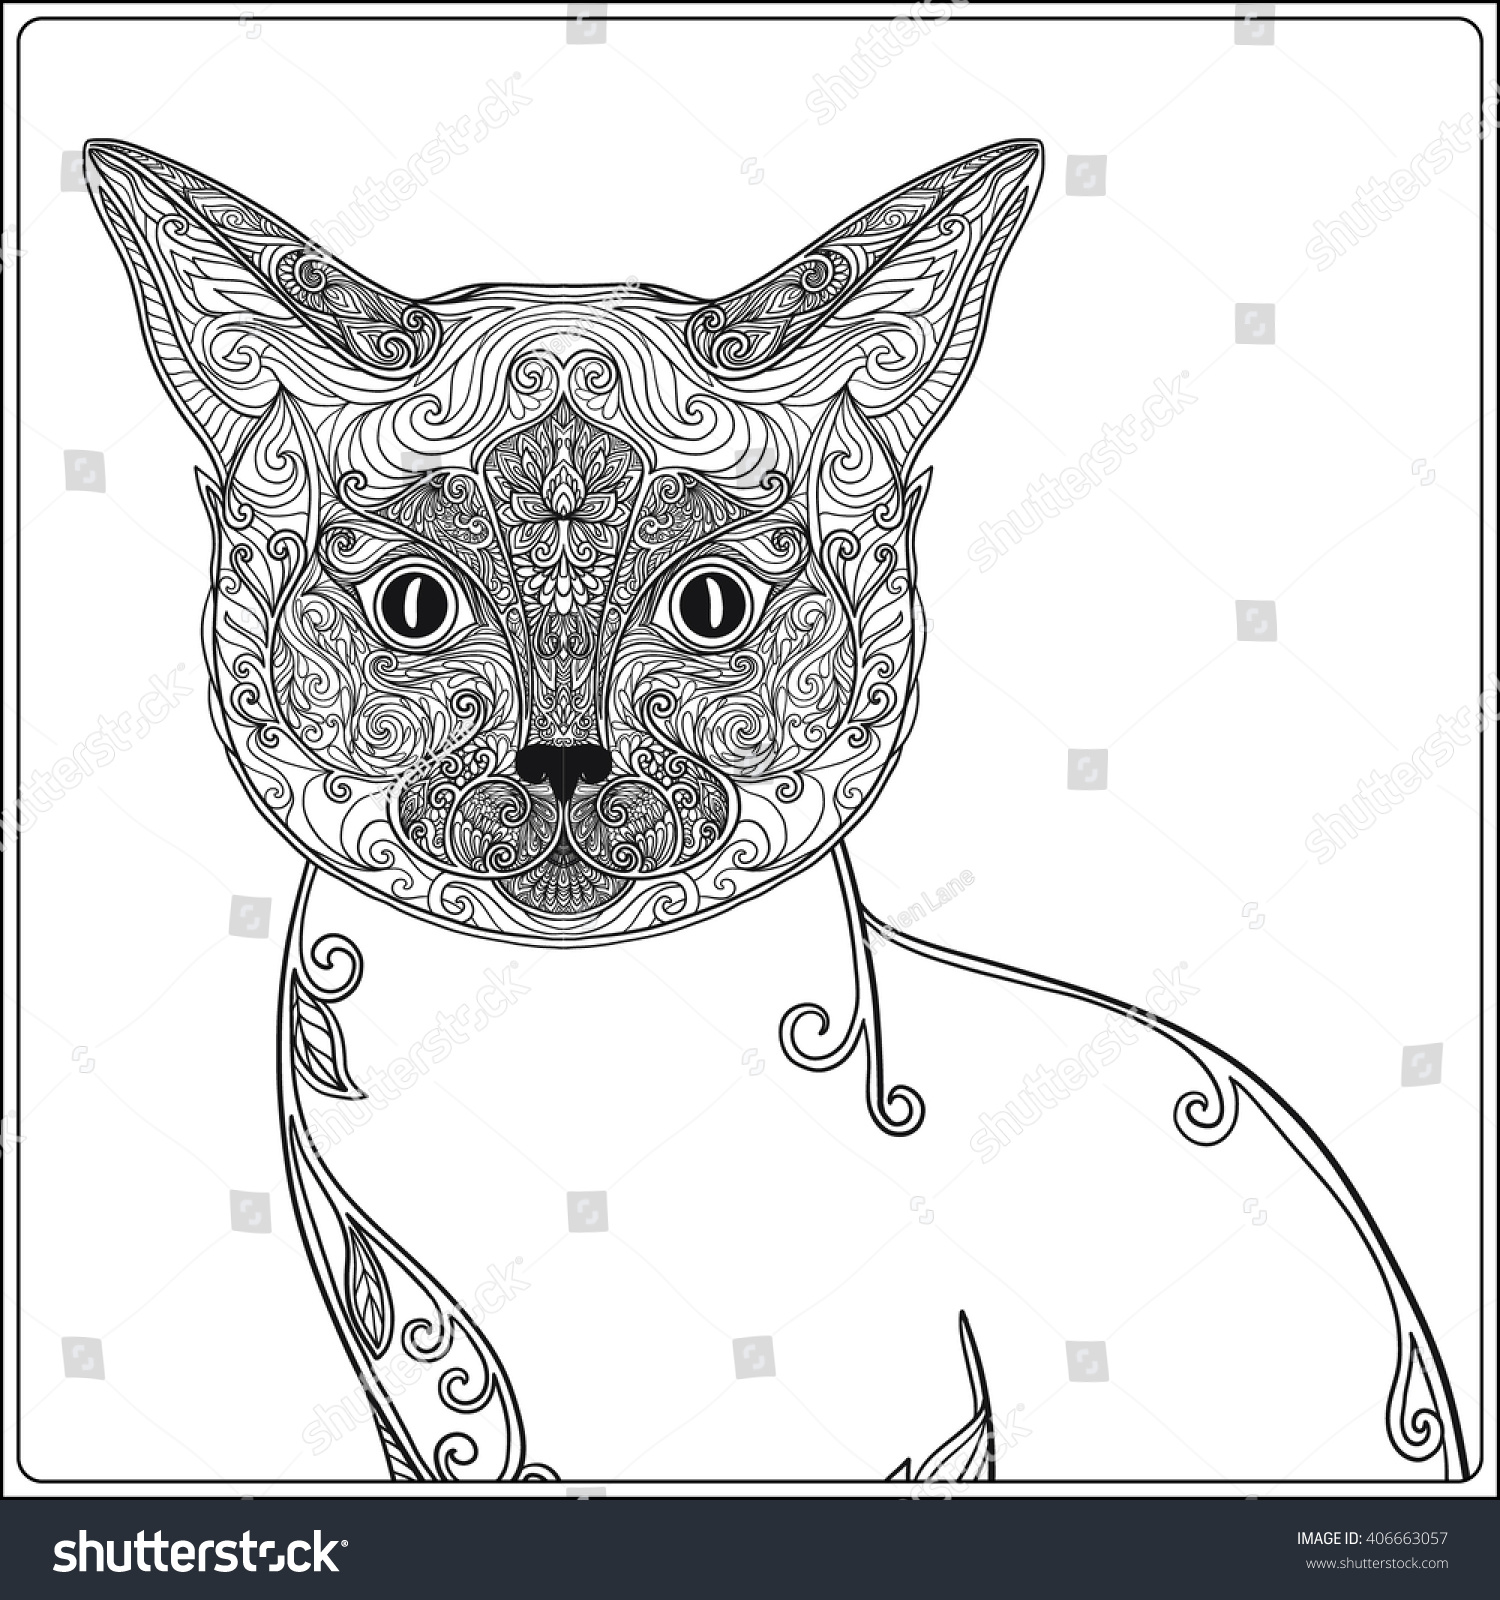 Decorative Cat Vector Illustration Adult Coloring Book Page